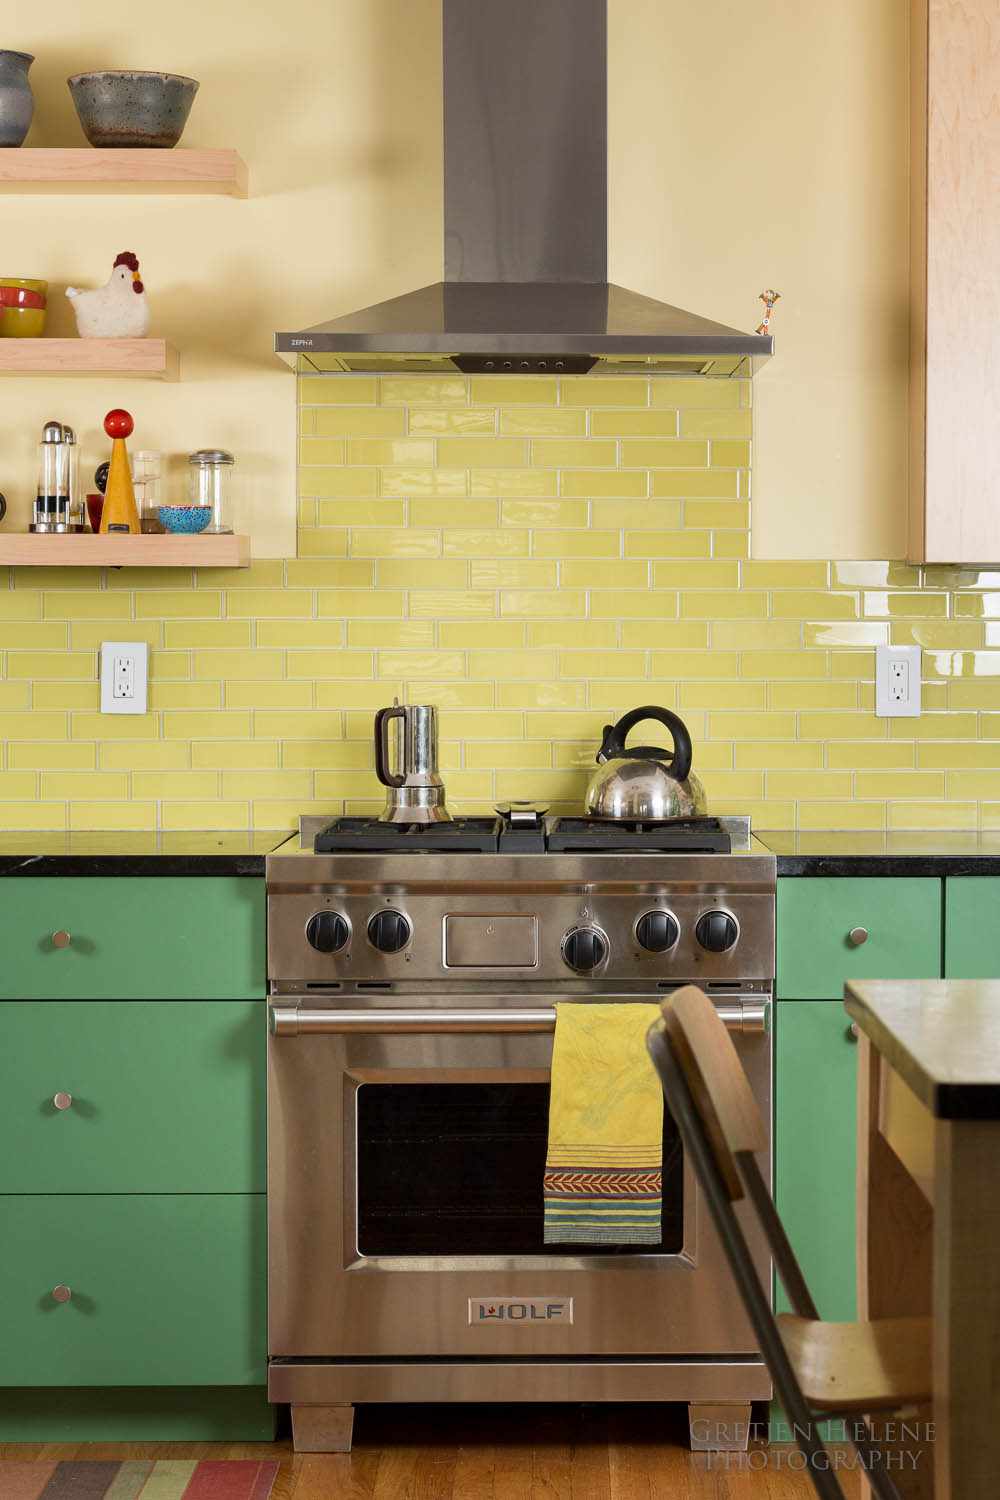 Tile defines the range backsplash